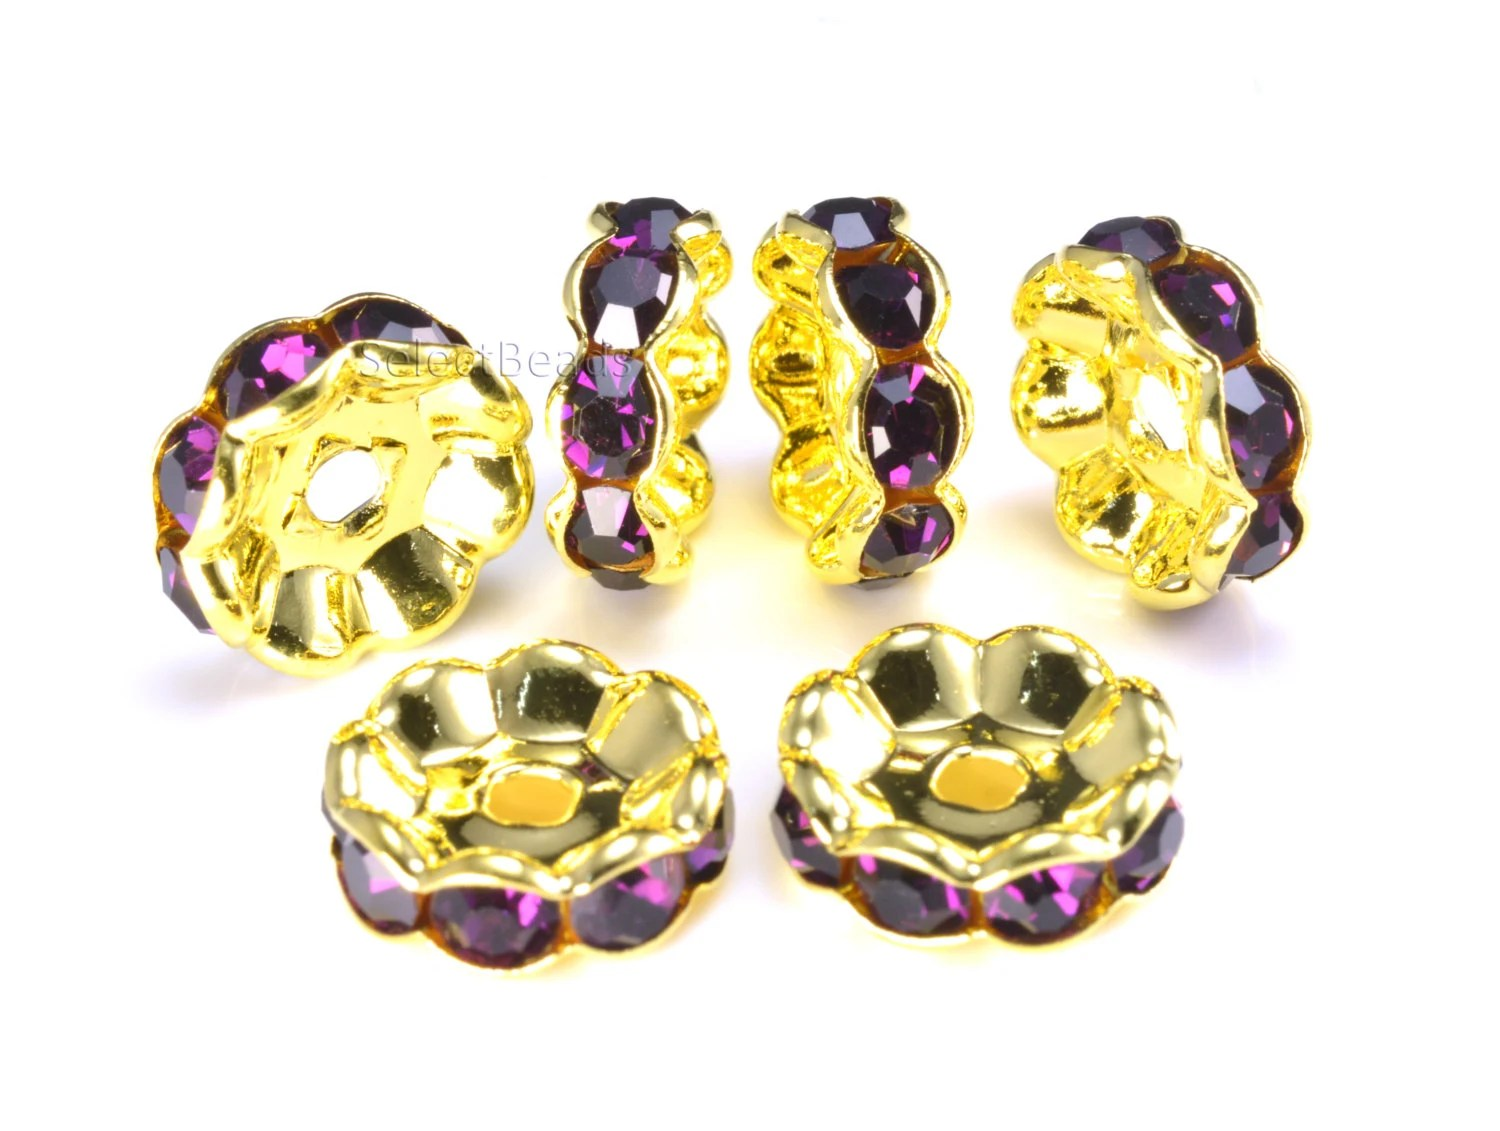 rhinestone copper spacer bead yellow gold plated purple